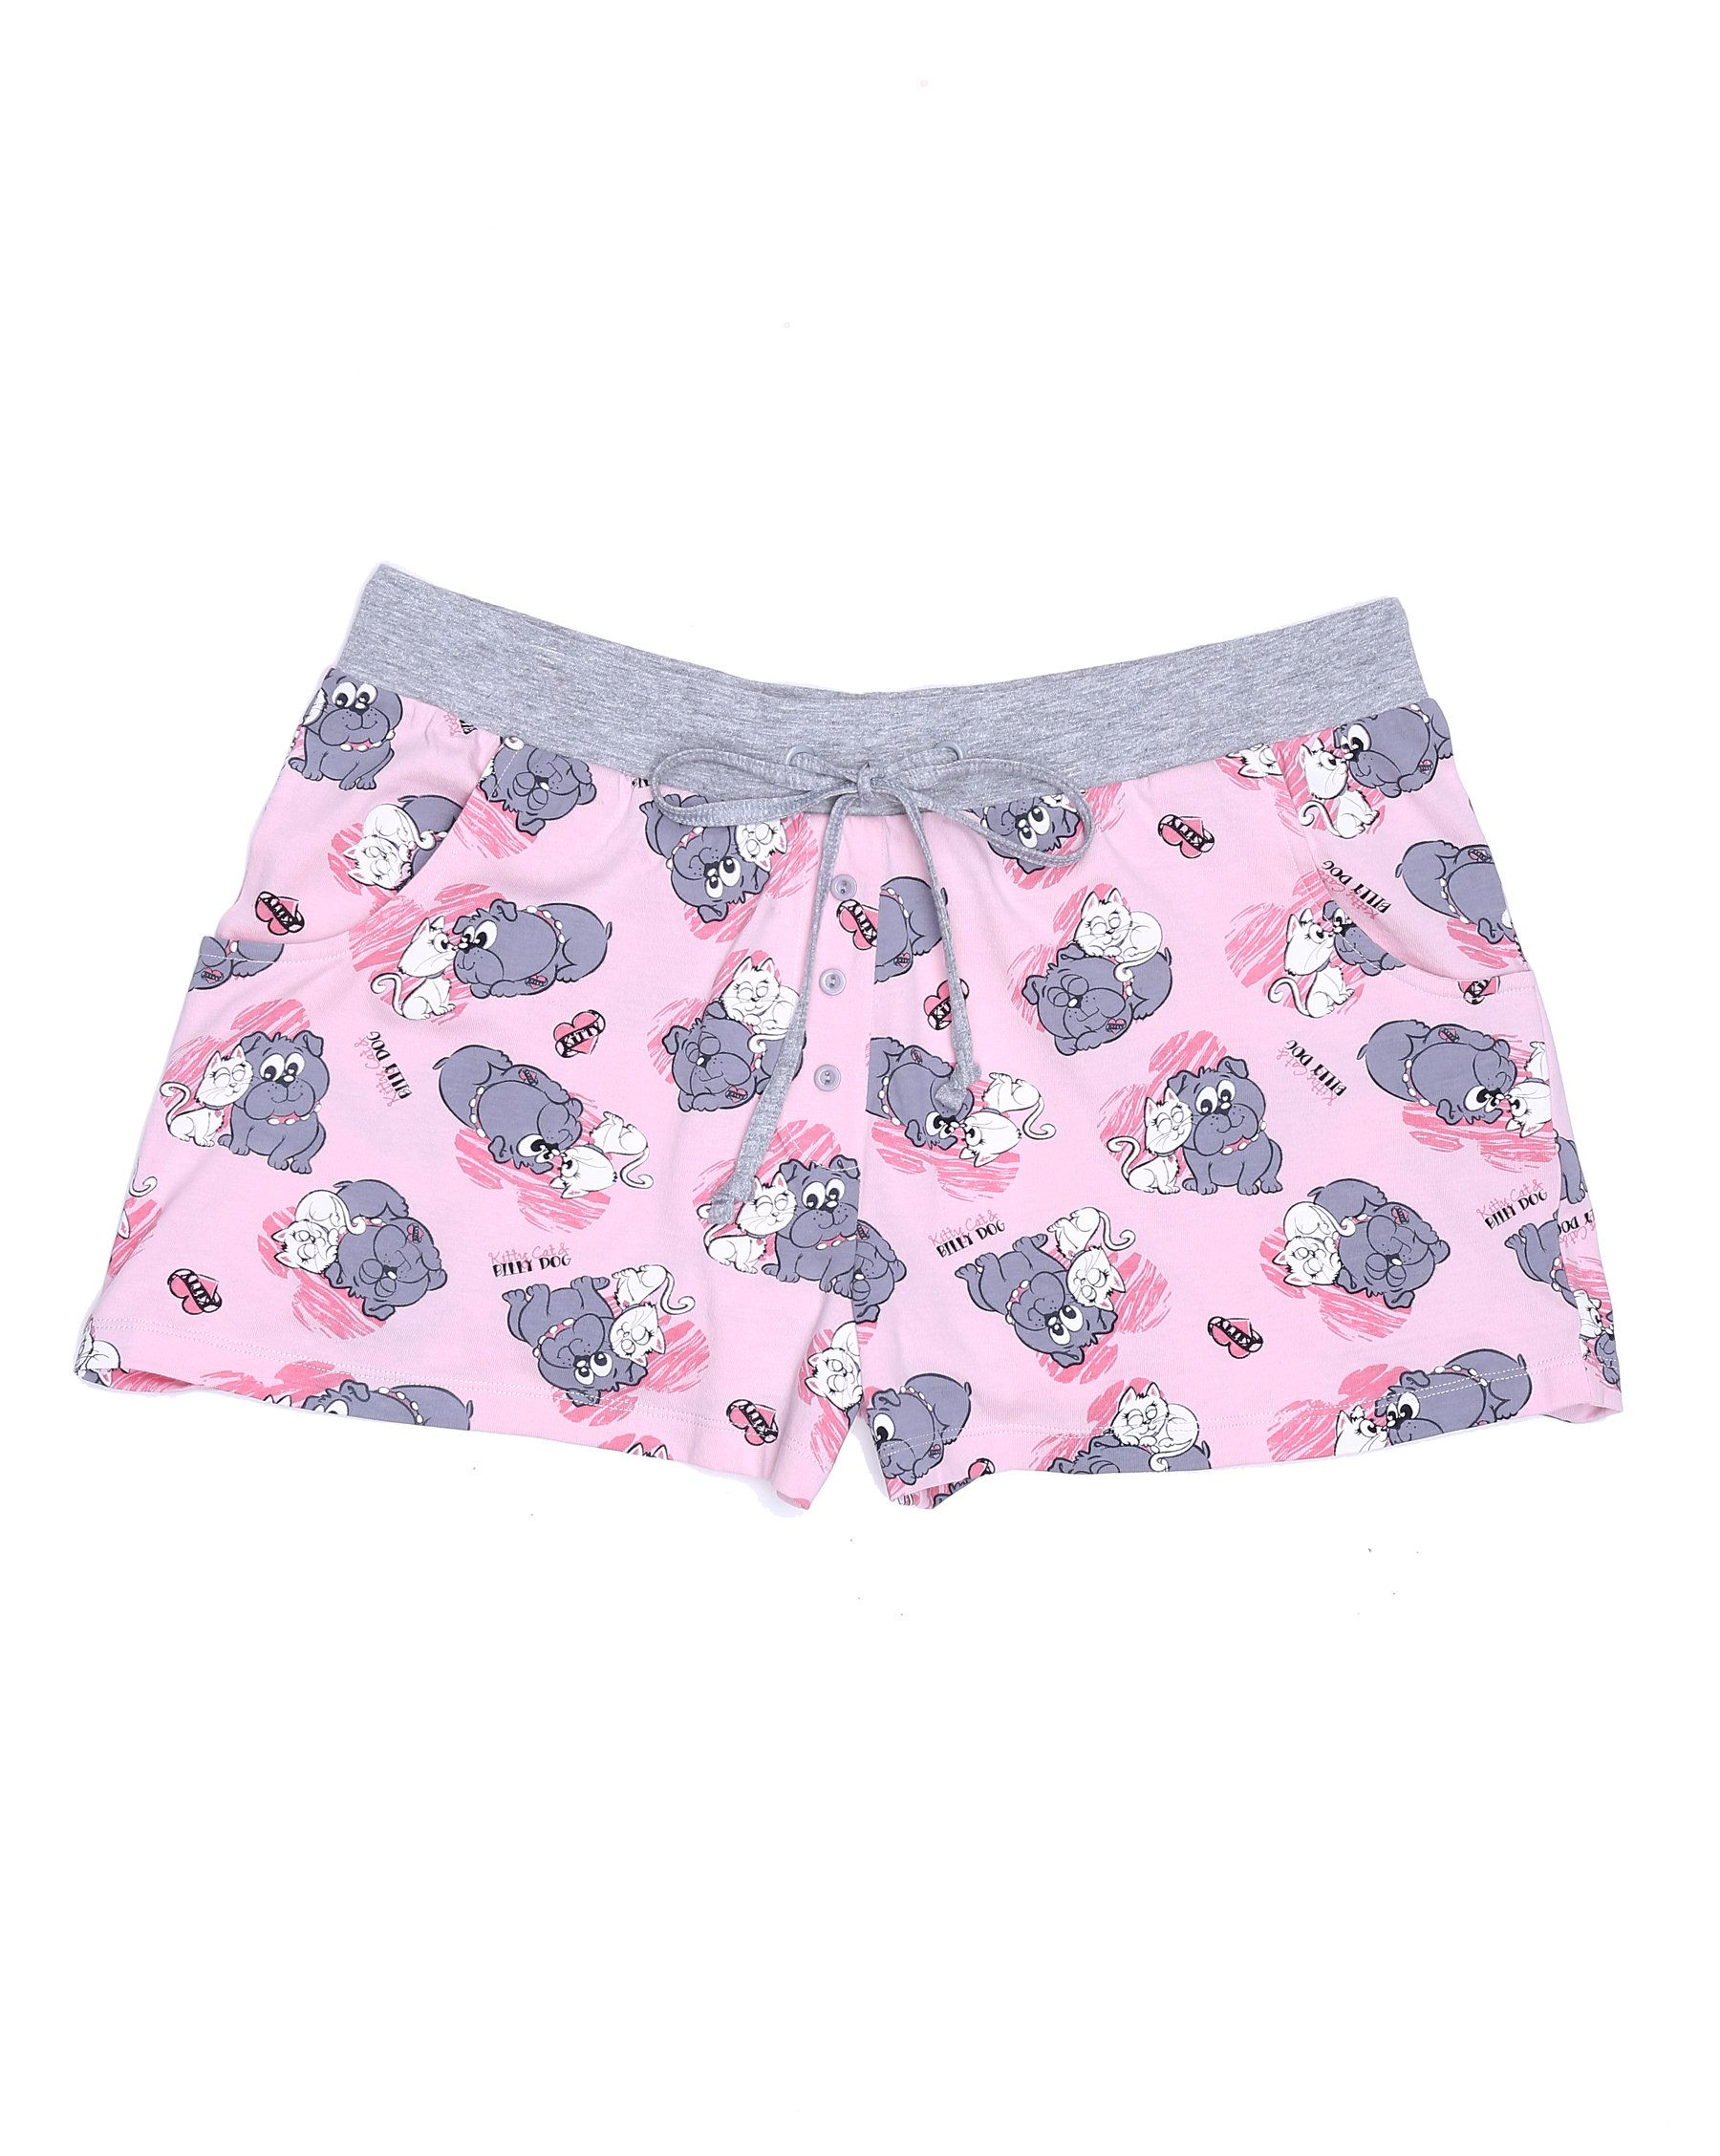 la Vie en Rose - Product: Kitty Cat and Billy Dog Boxers